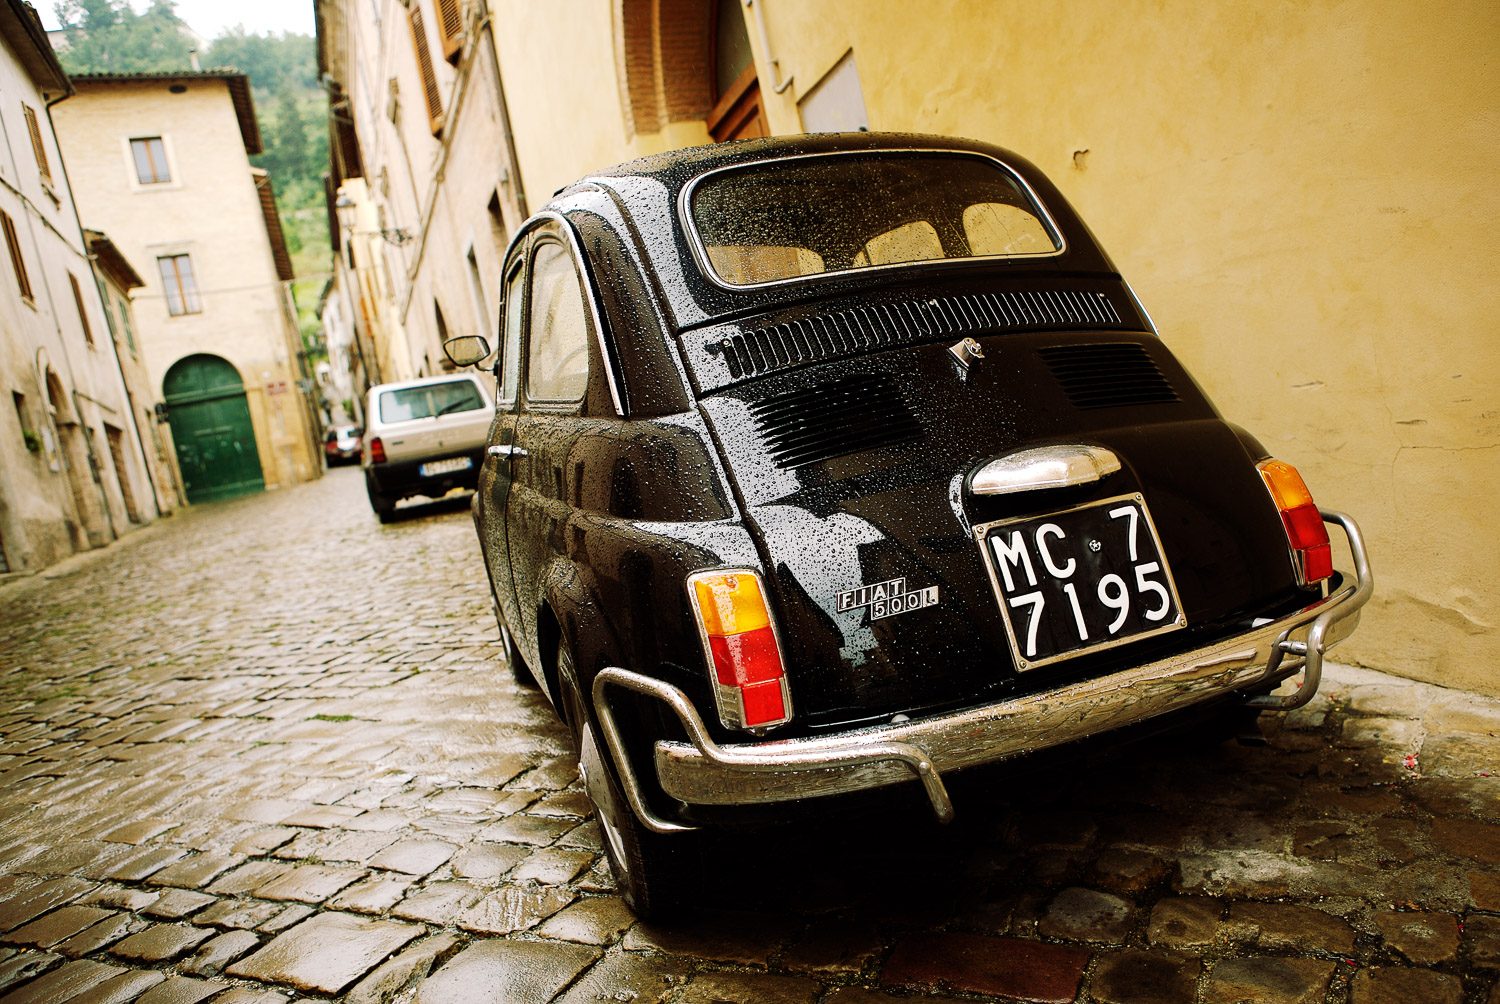 Fiat 500 - Le Marche, Italy - photo by Peter Corcoran www.petercorcoran.com - Words by www.educated-traveller.com